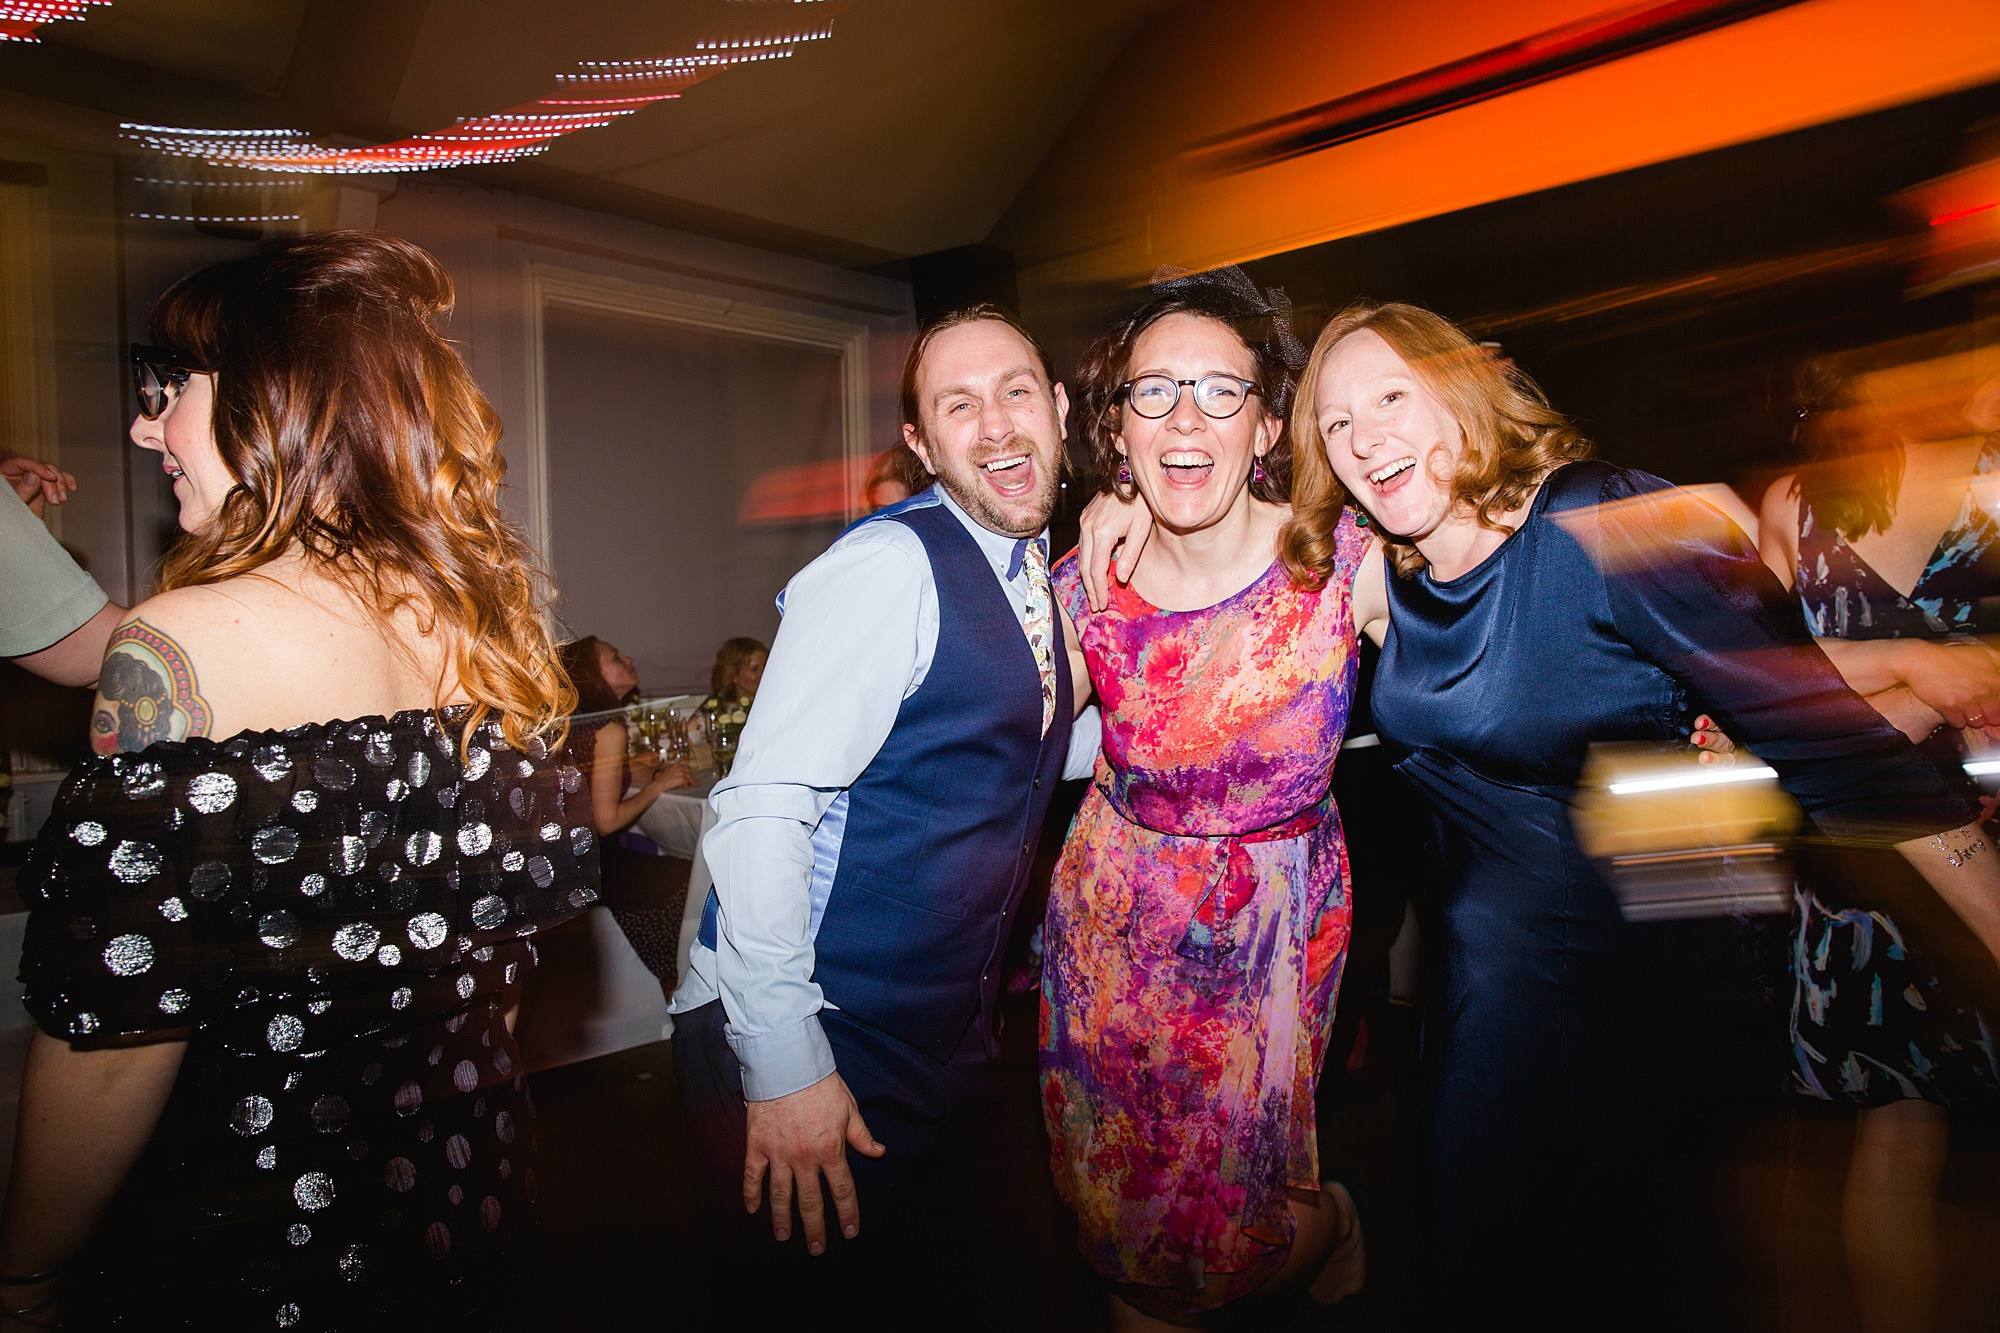 guests on the dance floor at turks head pub wedding